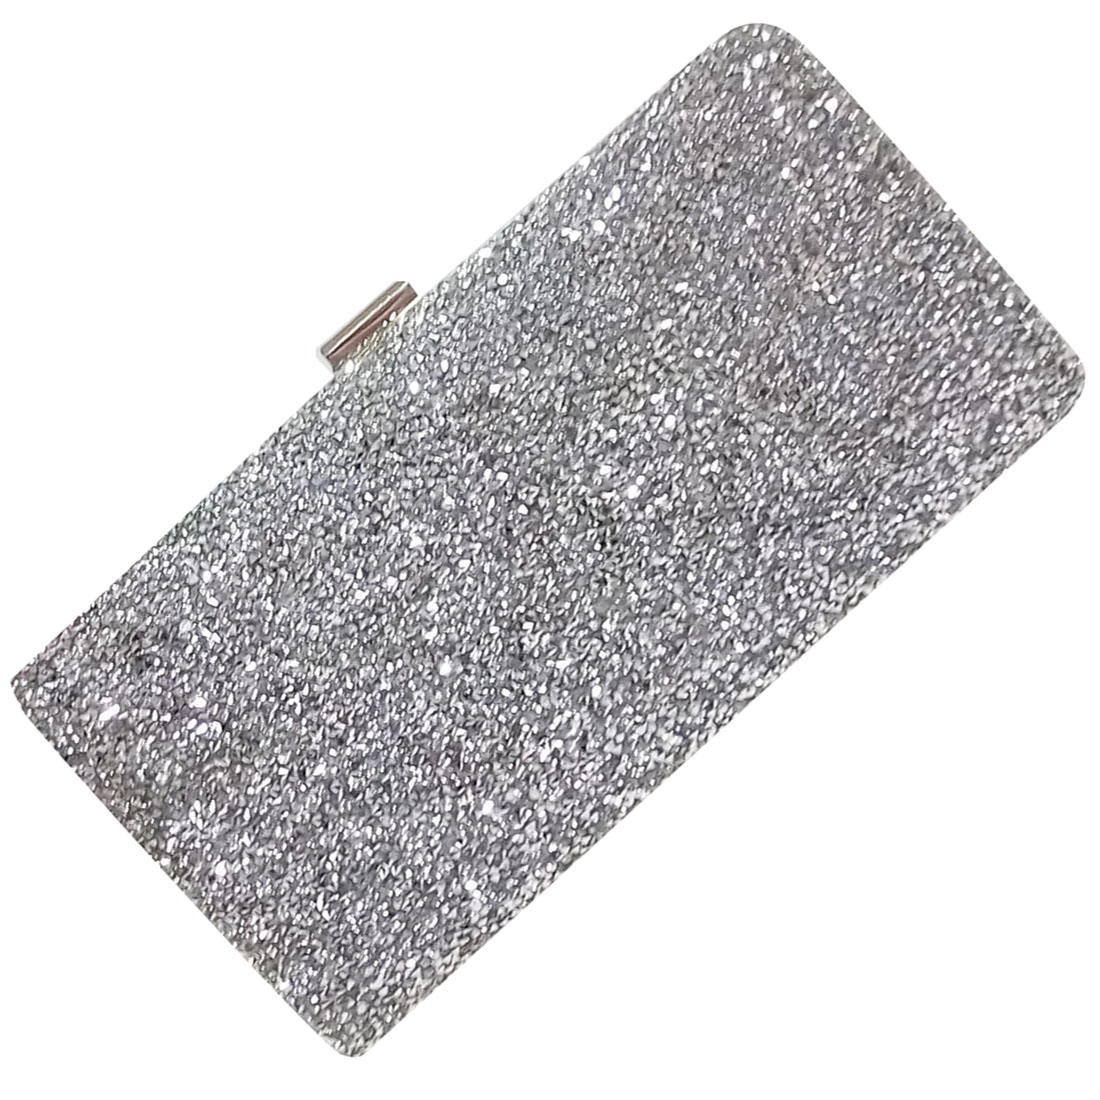 FGGS-Woman Evening bag Women Diamond created Rhinestone Clutch Crystal Day Clutch Wallet Wedding Purse Party Banquet, Silver fashion vintage elegant black banquet wallet hard hasp woman evening bag casual cute multicolor business clutch purse for women